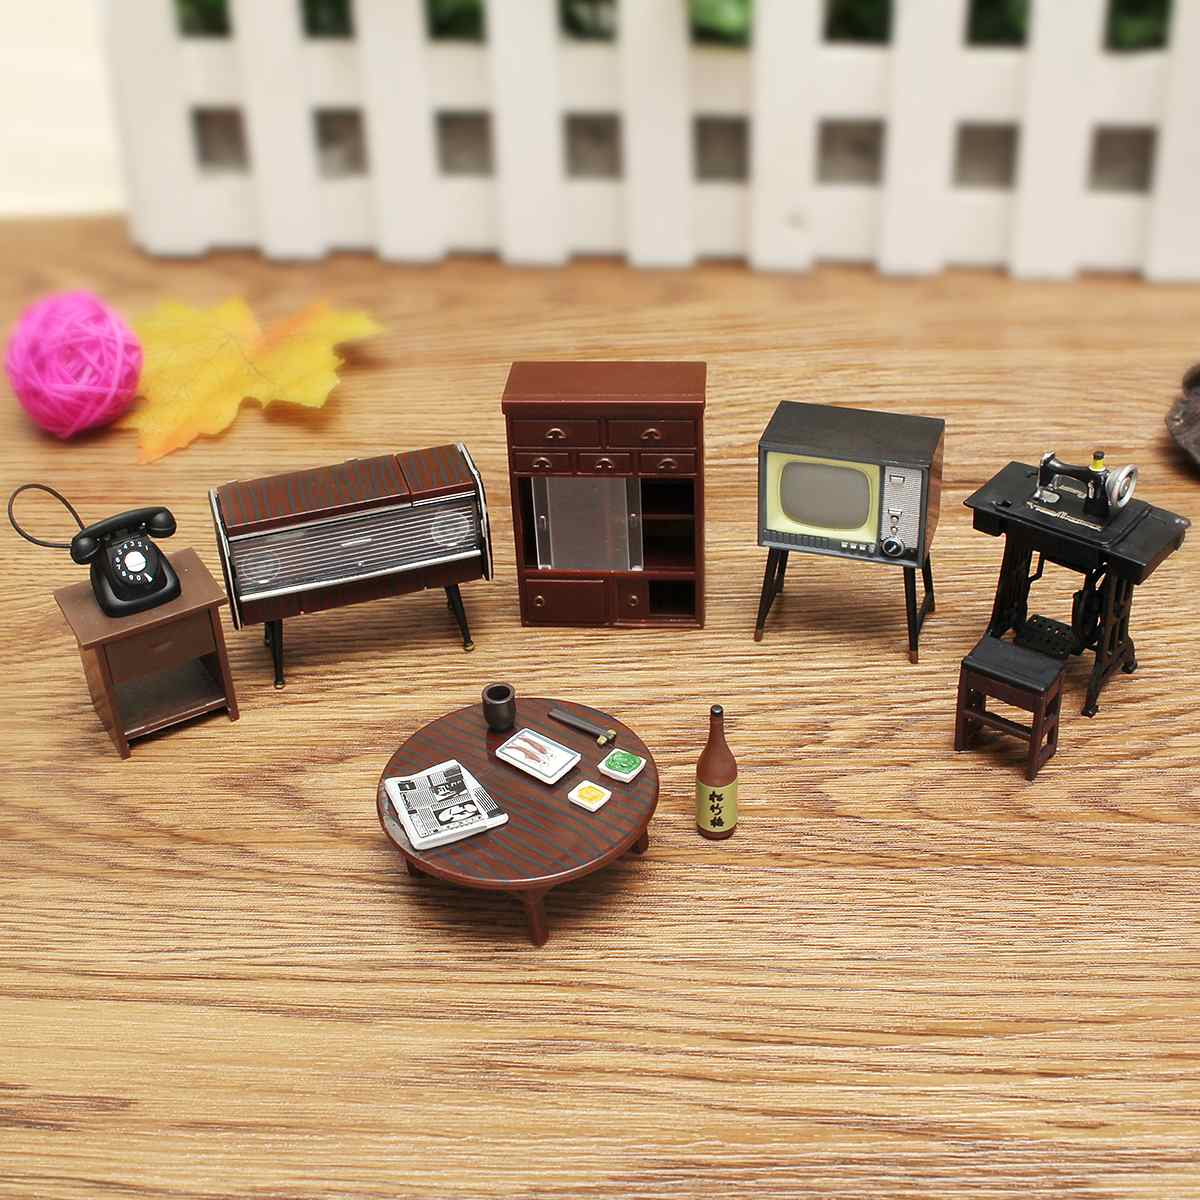 Children Gifts Toys Home Decoration 8Pcs Vintage Miniature Sewing Machine Telephone DollHouse Furniture Living RoomChildren Gifts Toys Home Decoration 8Pcs Vintage Miniature Sewing Machine Telephone DollHouse Furniture Living Room